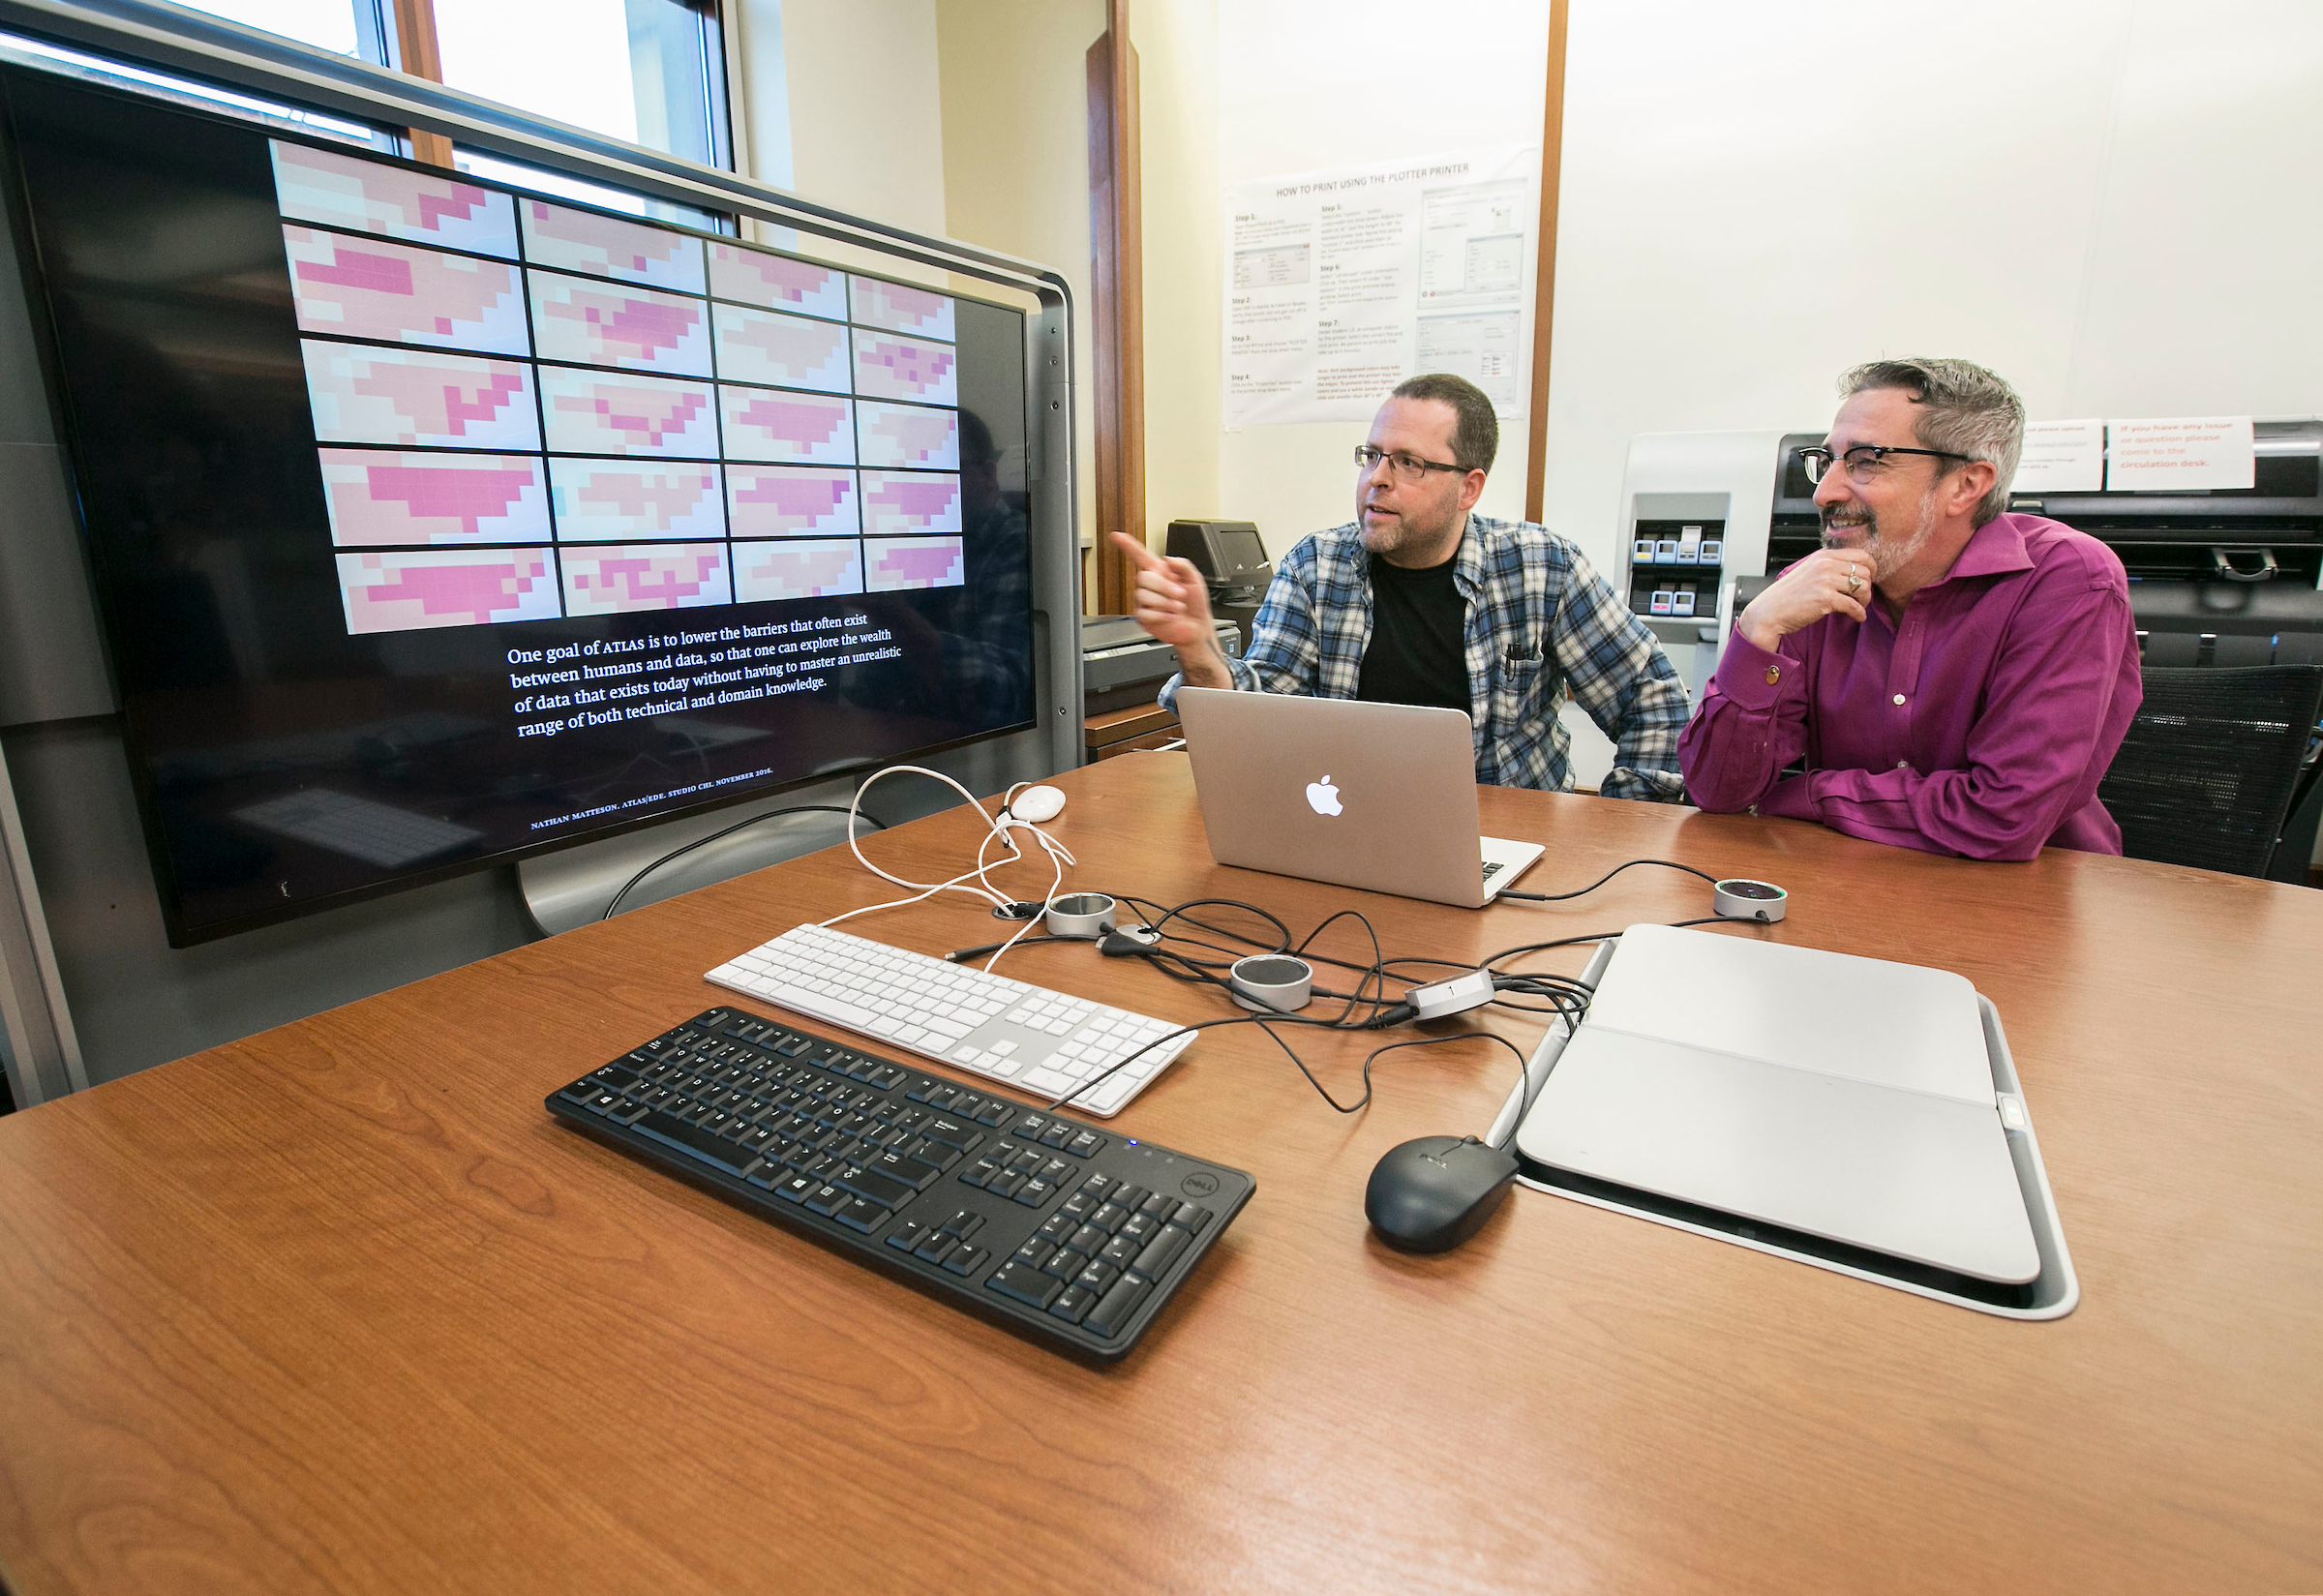 Nathan Matteson, left, assistant professor in the College of Computing and Digital Media, and Paul Jaskot, director of Studio χ (CHI: Computing/Humanities Interface) look over a project during an open house